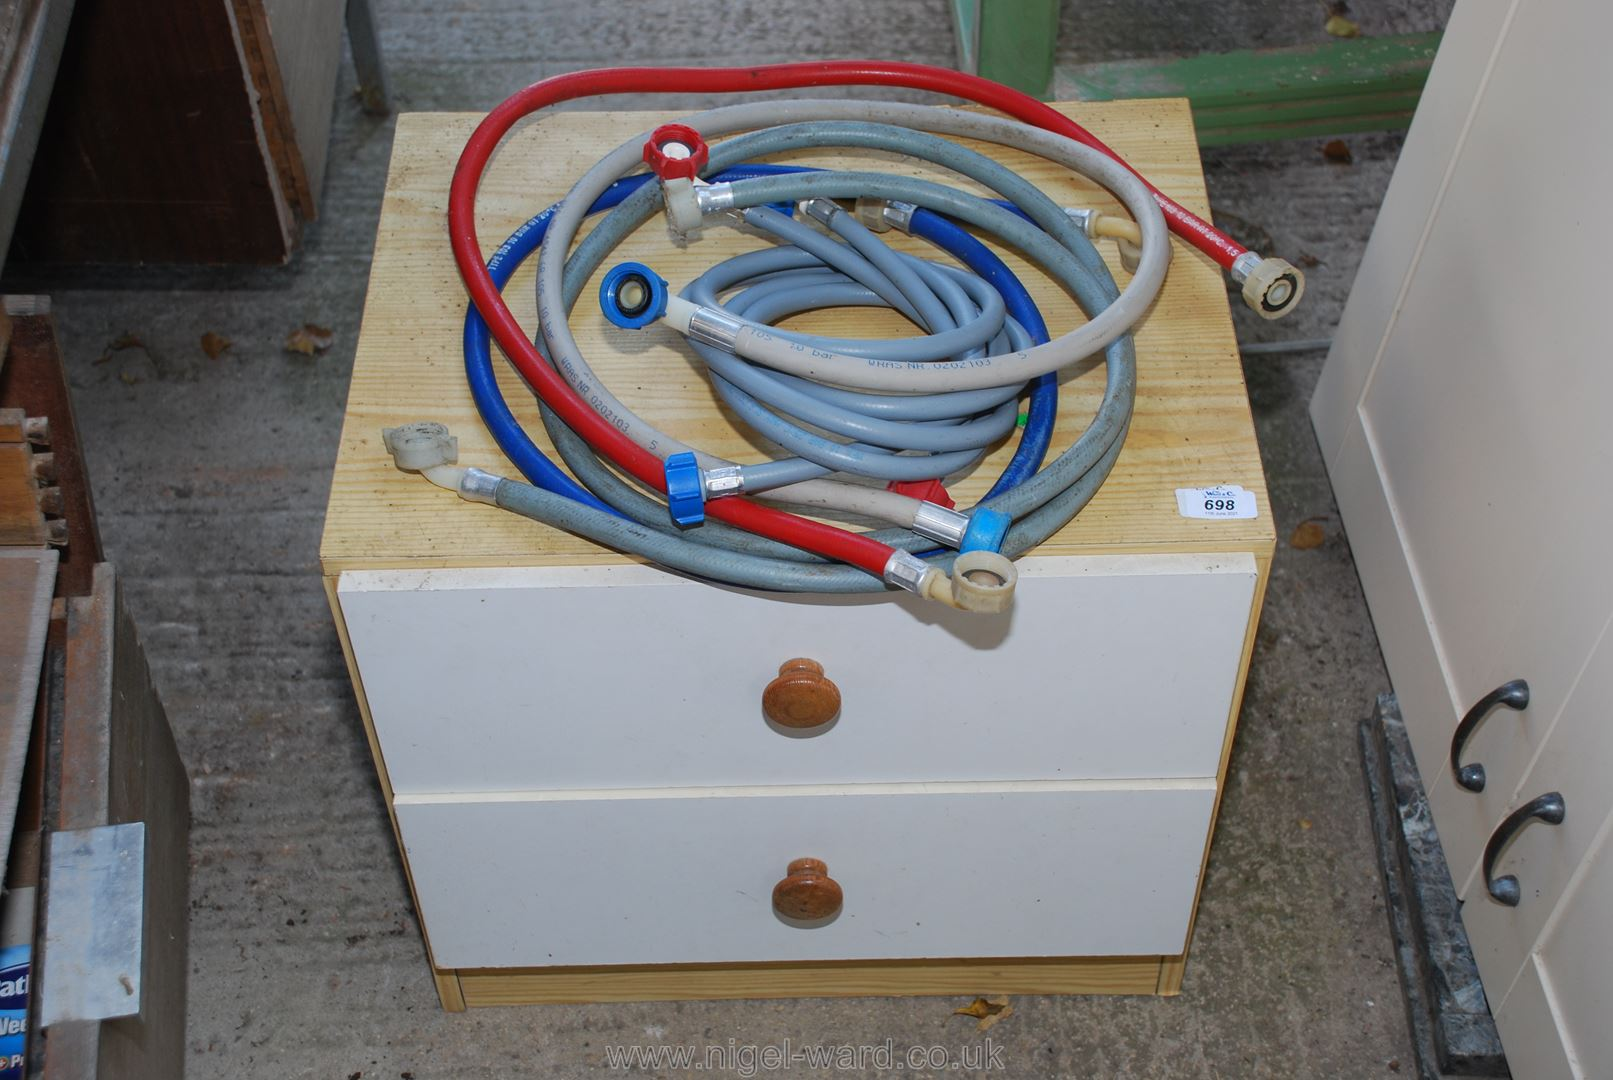 A bedside chest of drawers and a quantity of washing machine and dishwasher hoses etc.